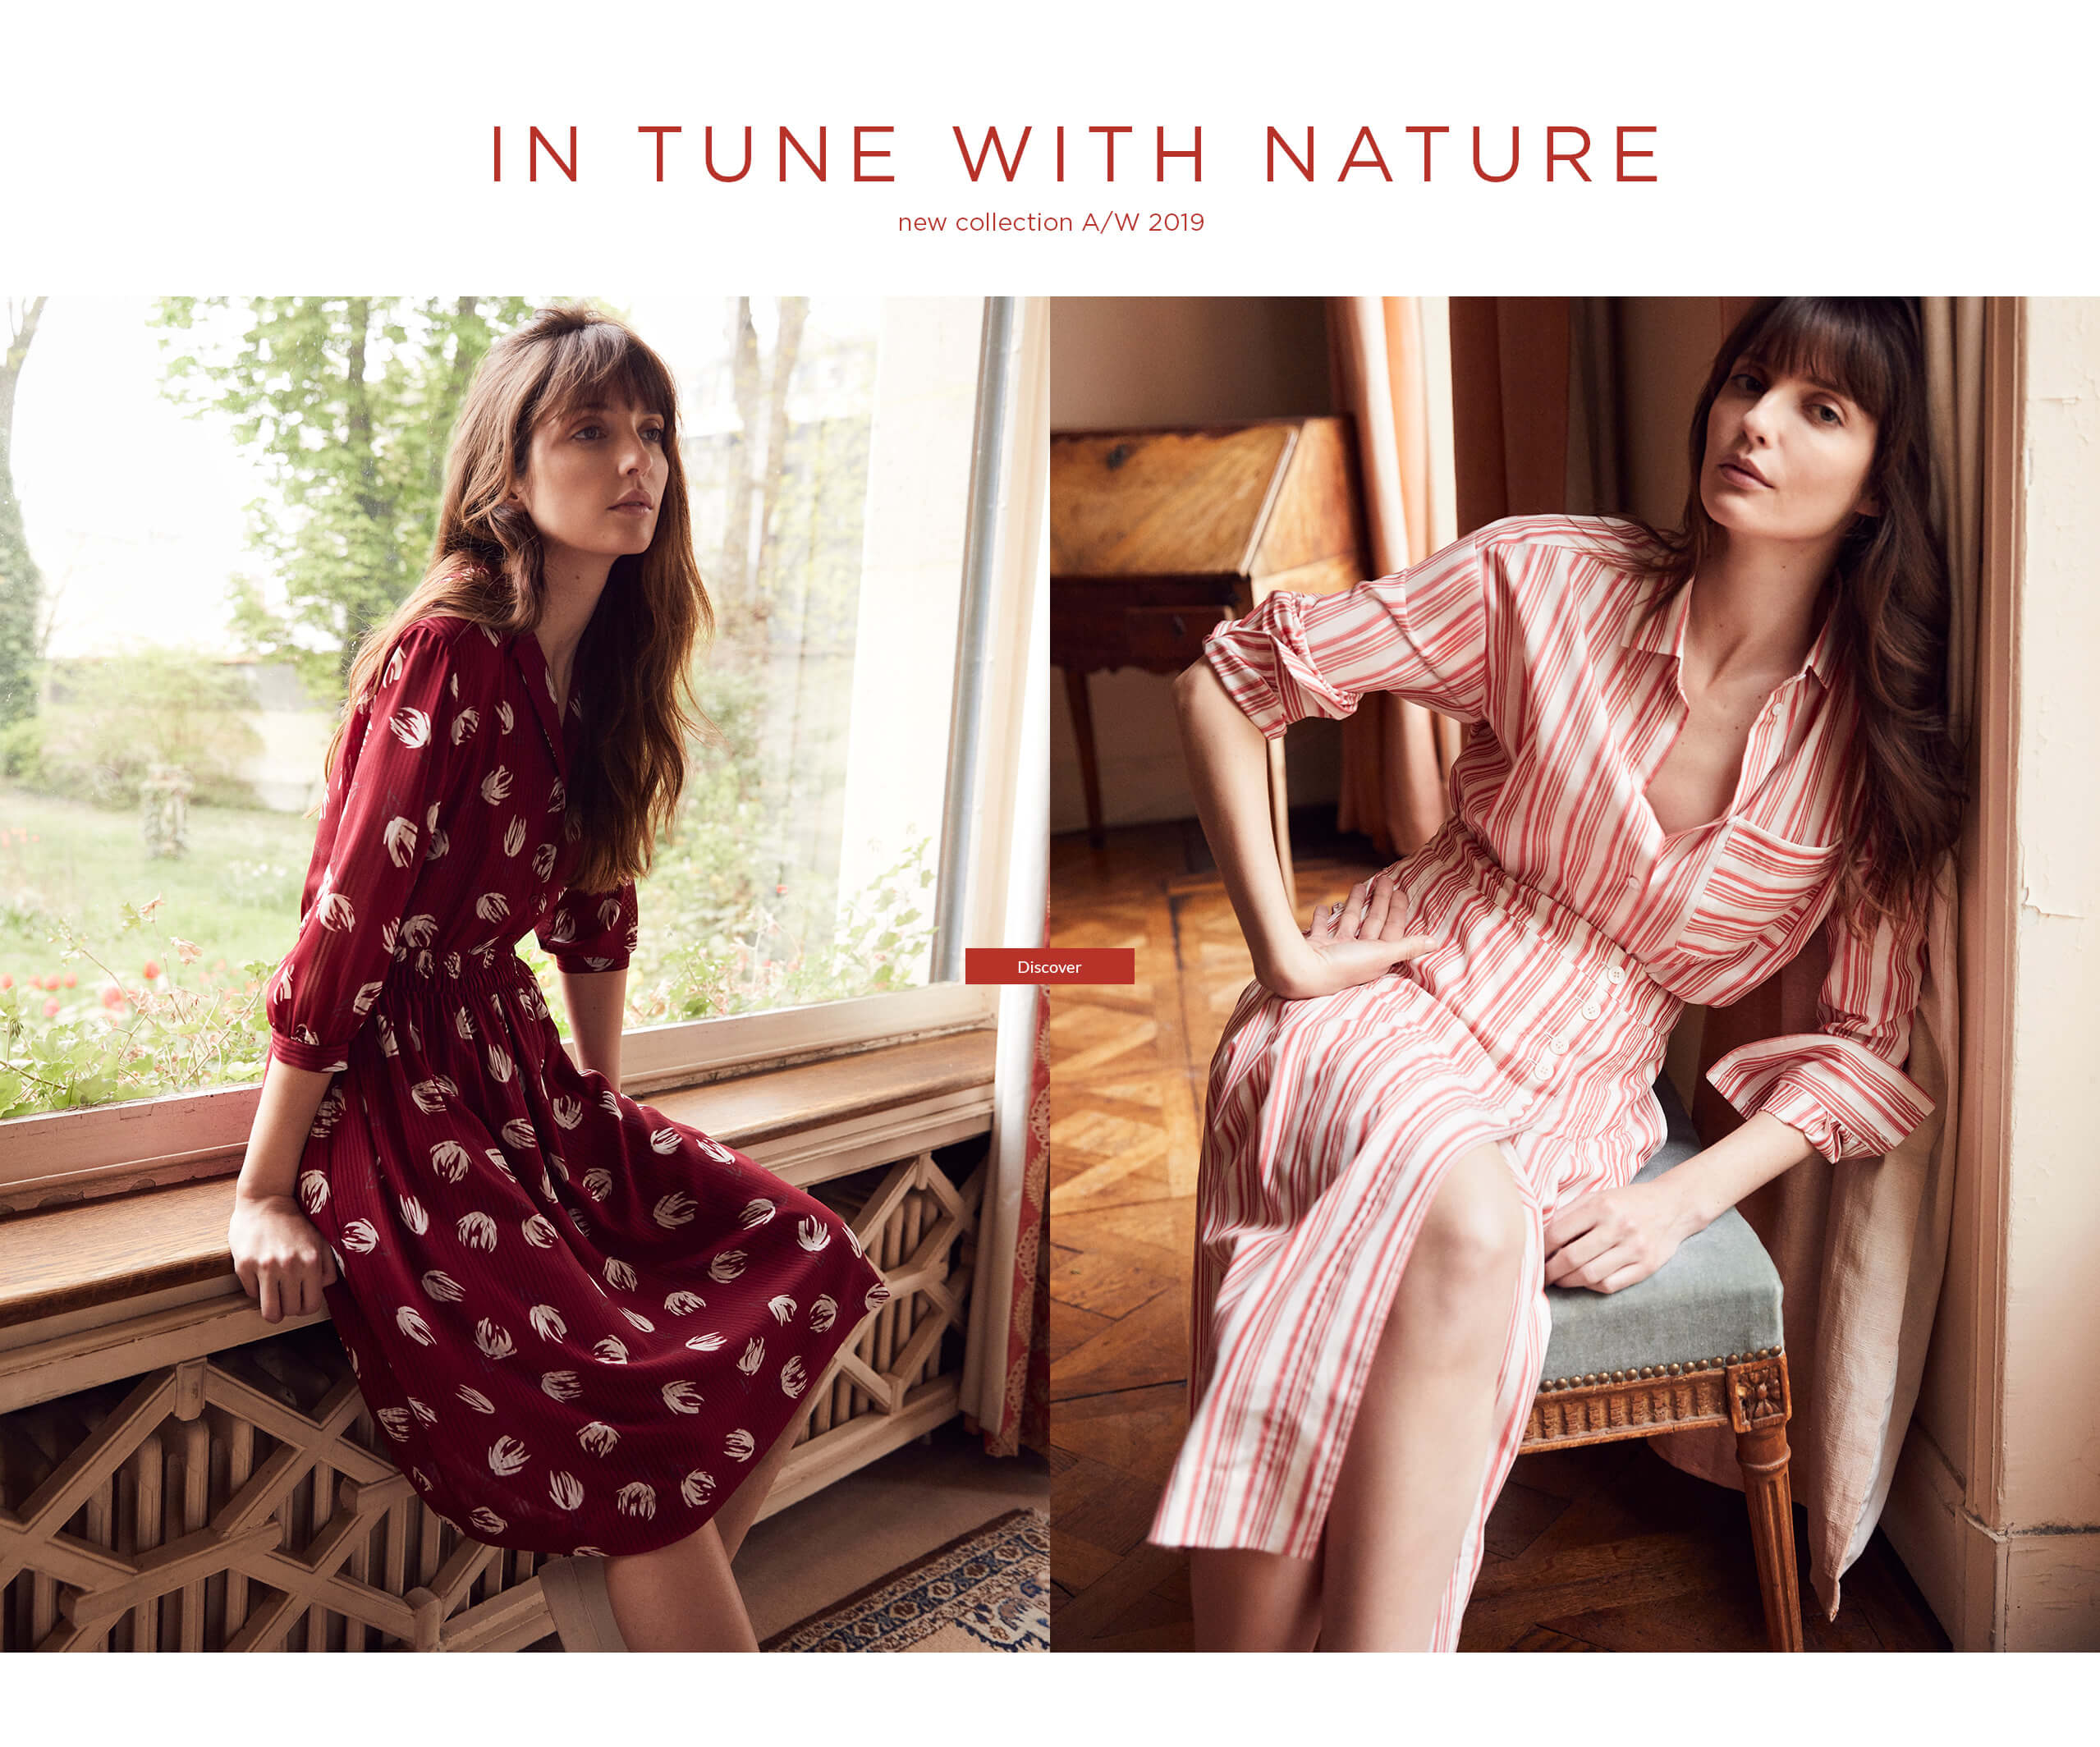 In Tune with Nature A/W 19